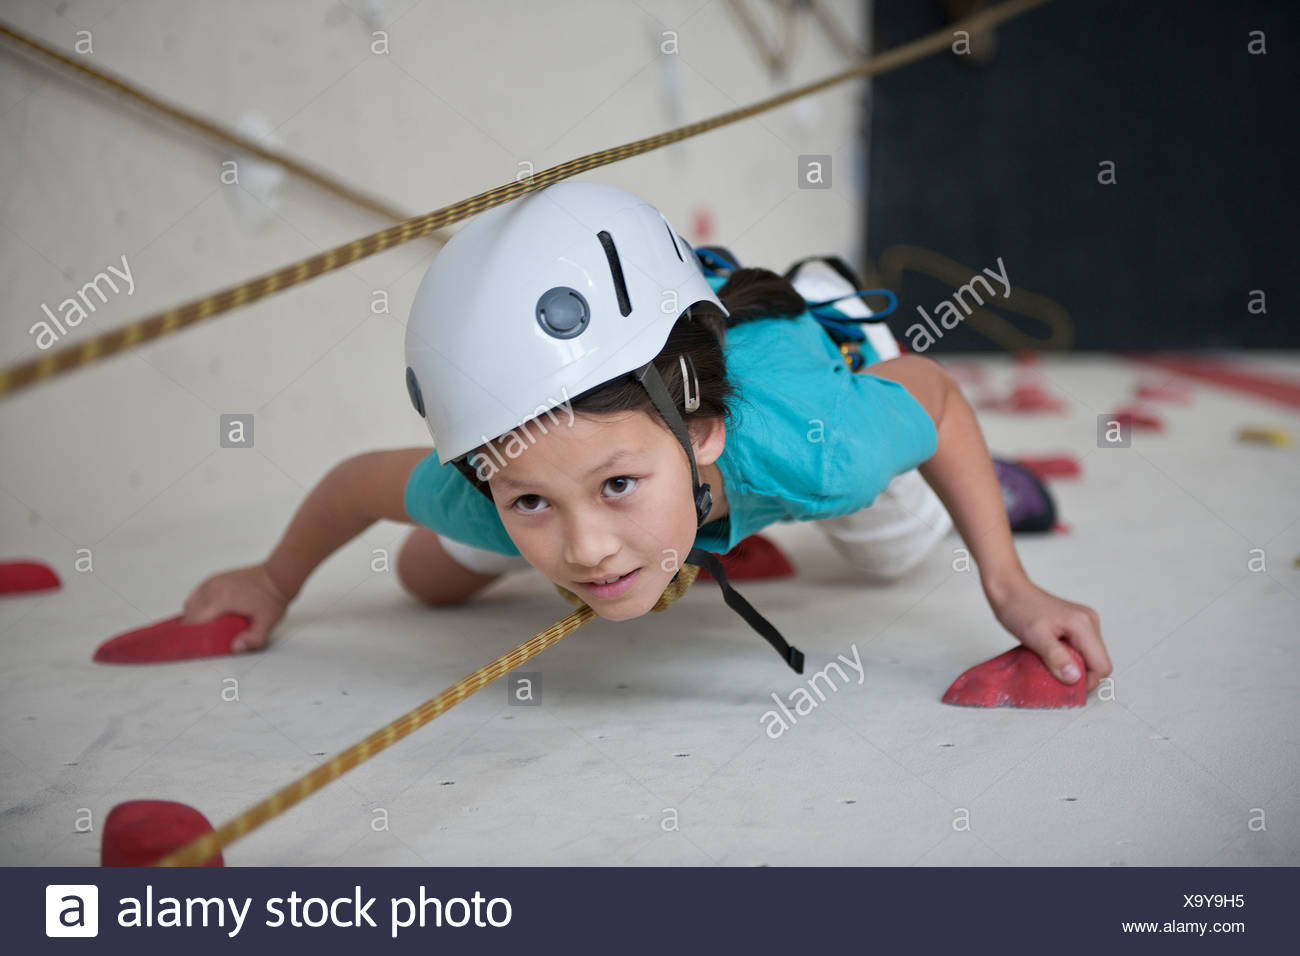 Girl climbing with ropes on climbing wall - Stock Image